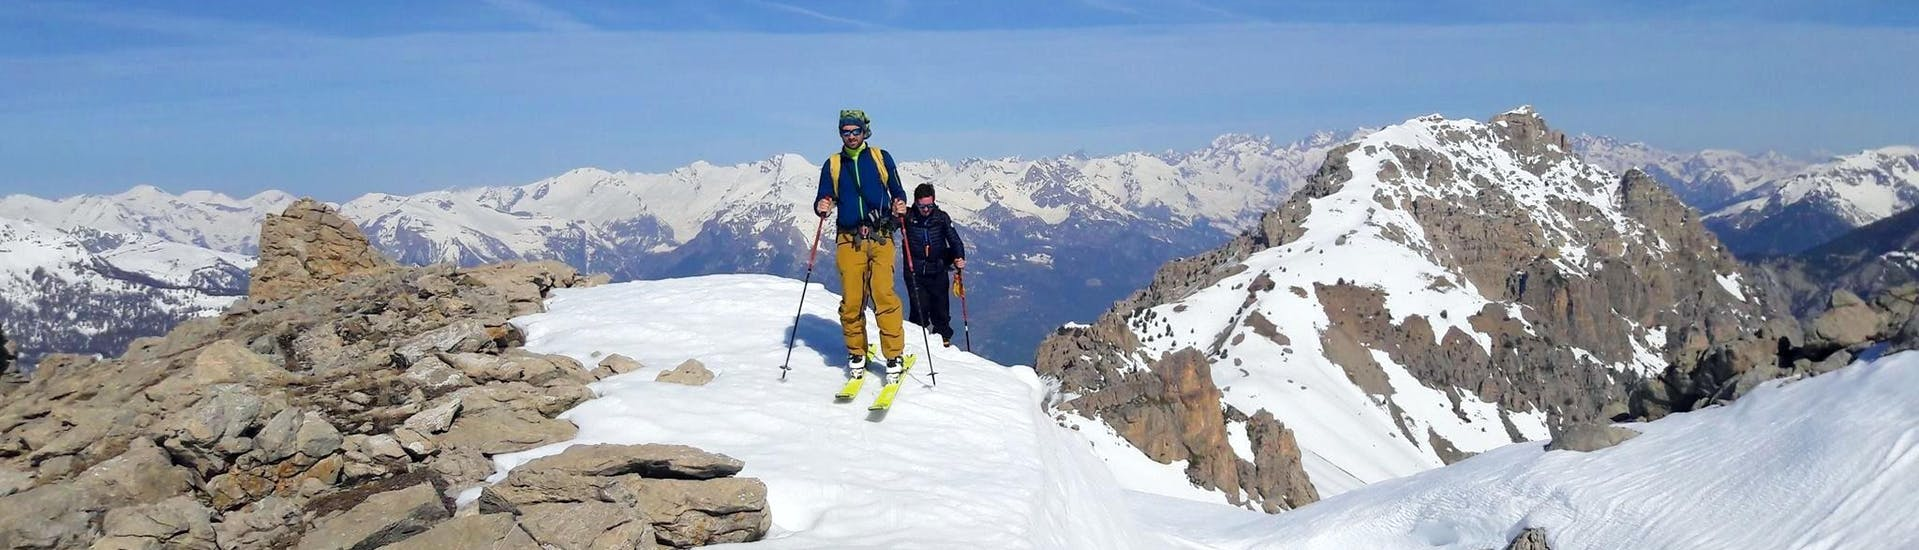 ski-instructor-private-for-adults-all-levels-evo2-vars-hero